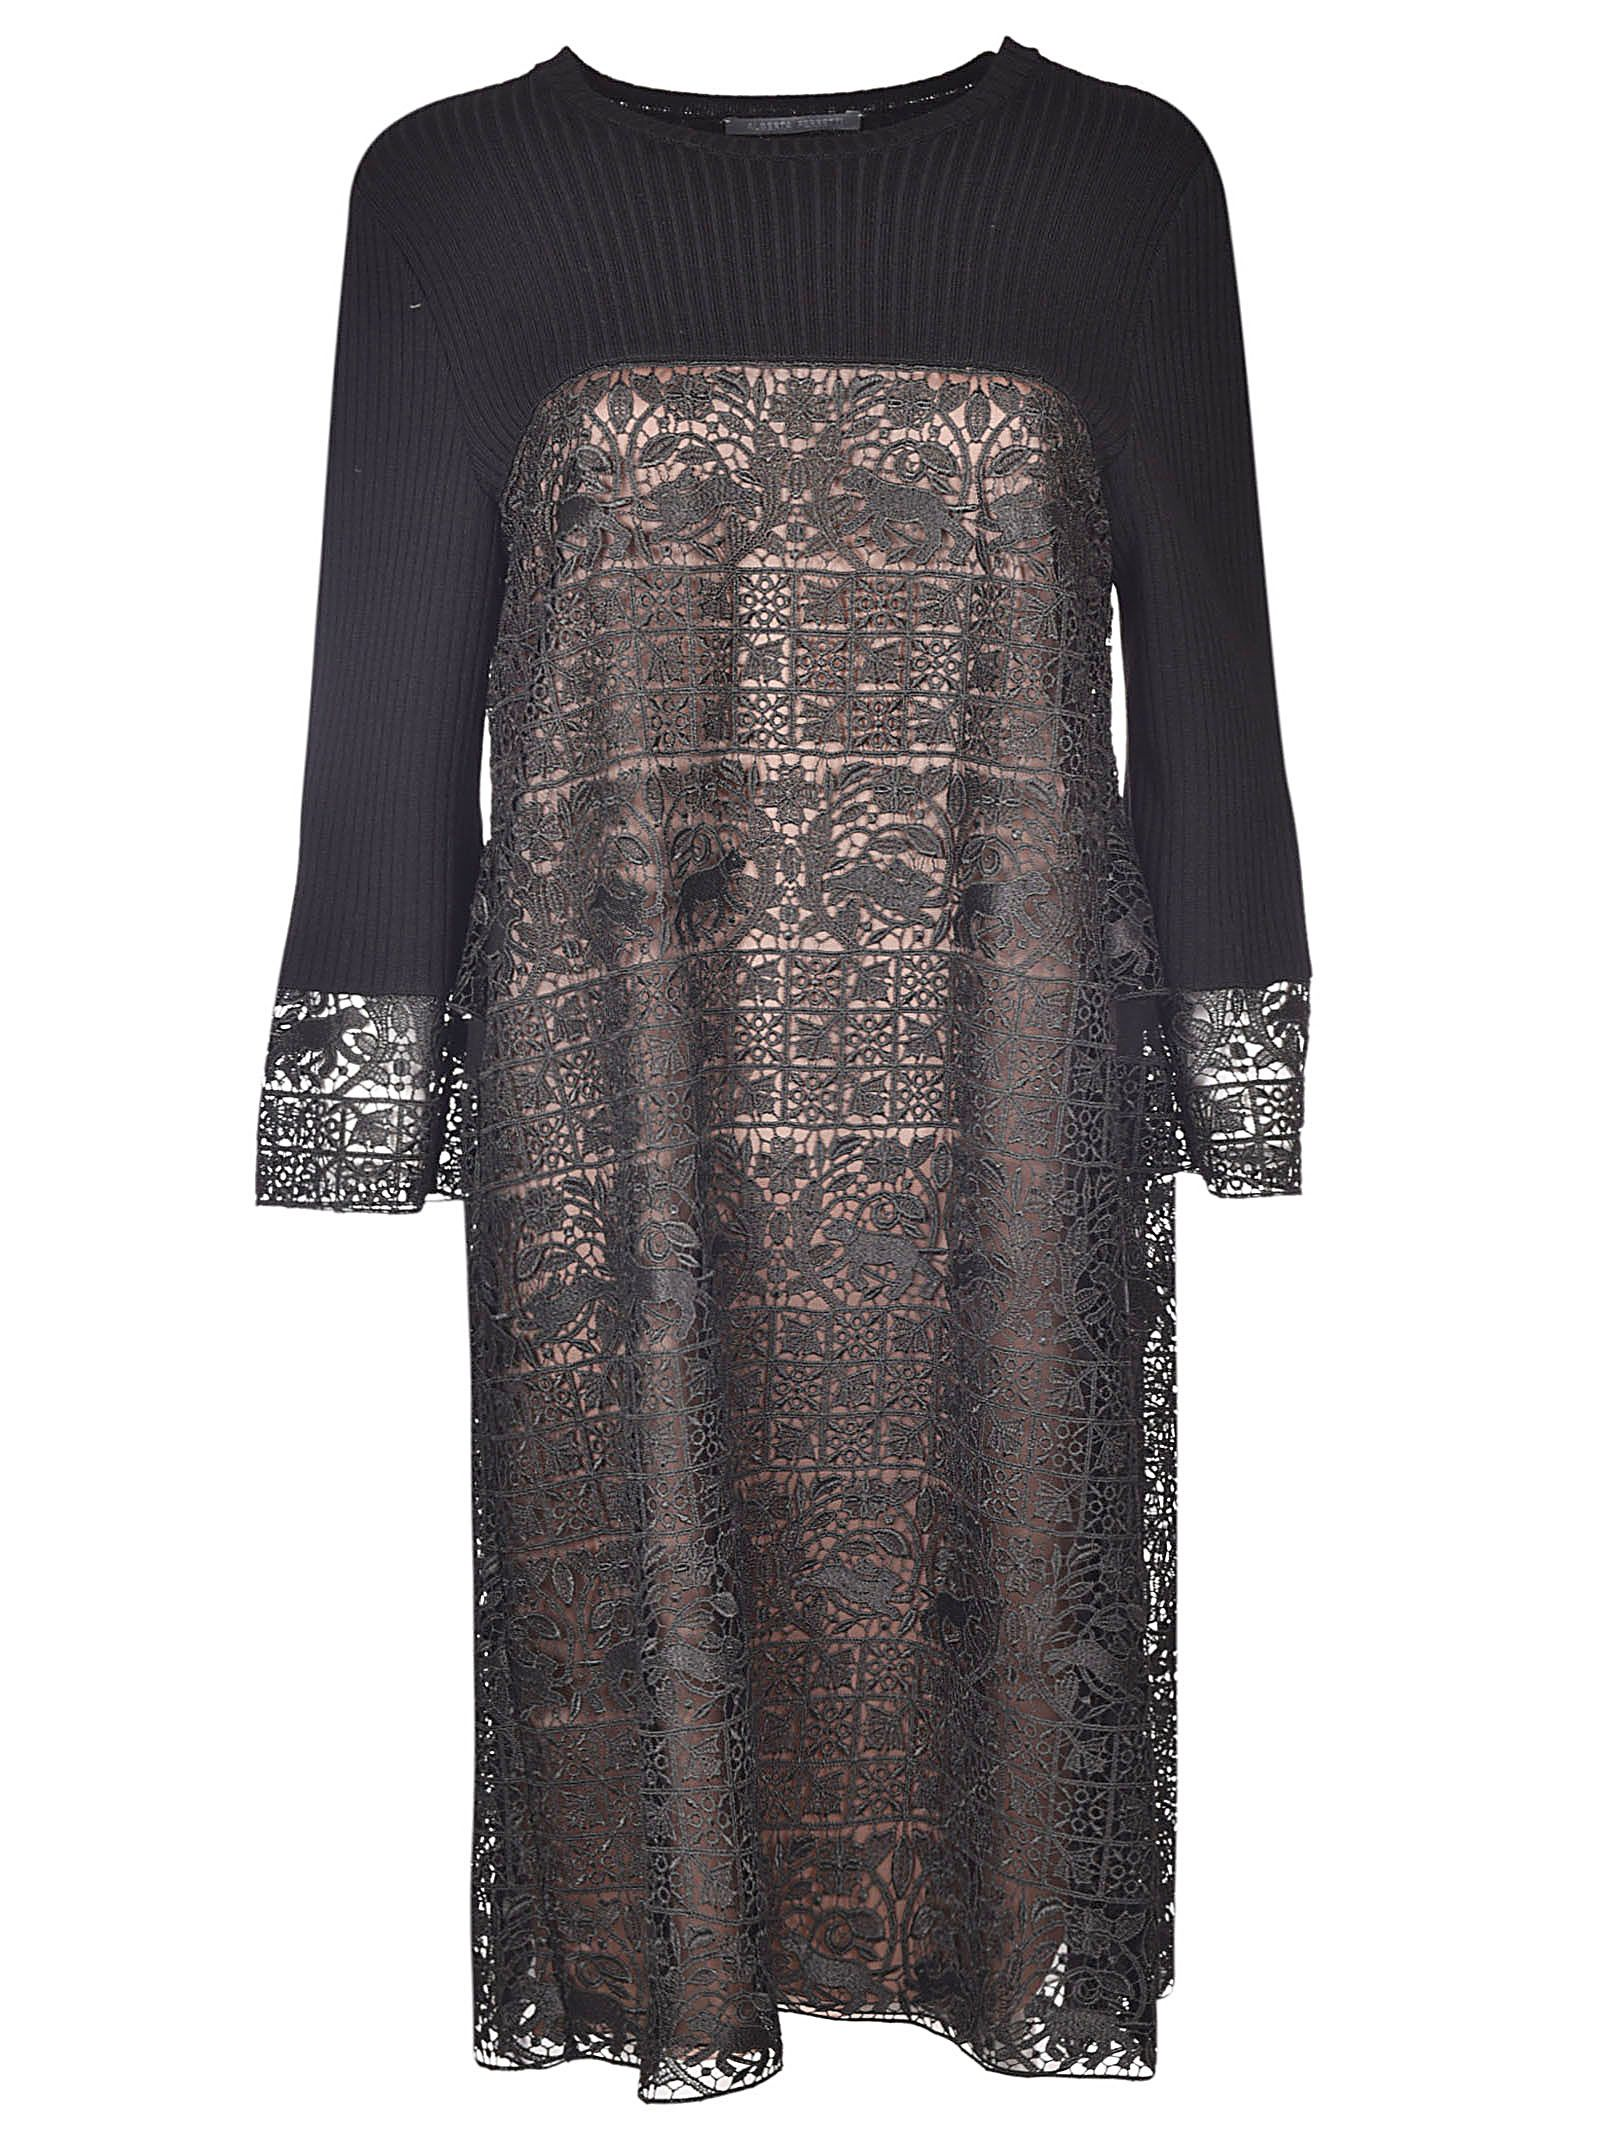 EMBROIDERED PANEL KNIT DRESS